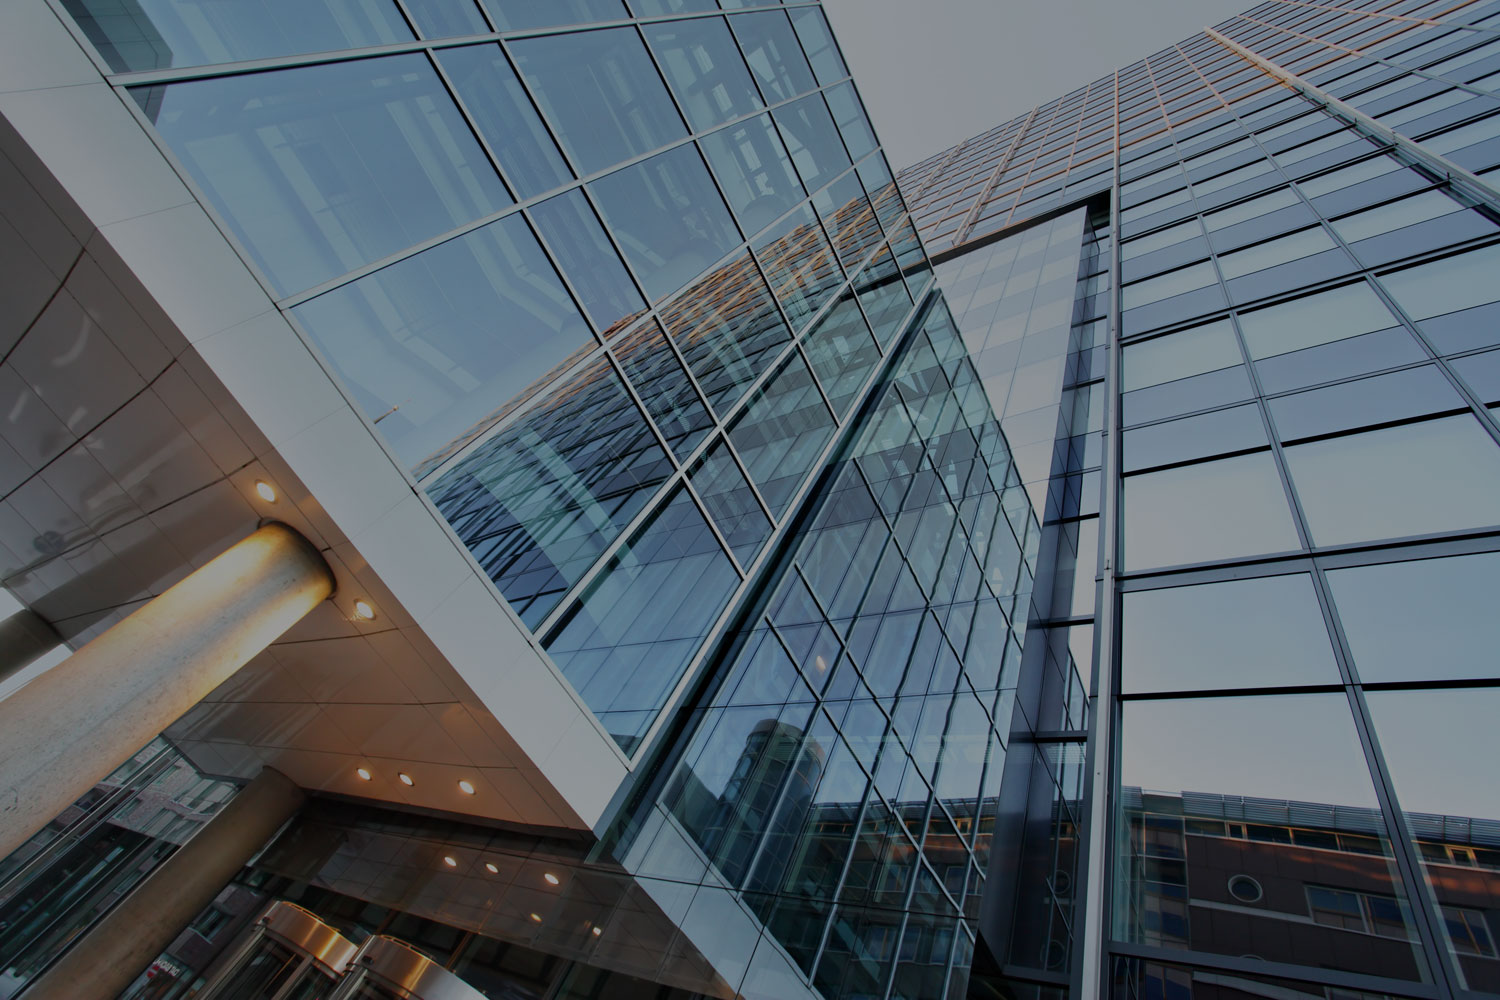 KOR GLASS & ALUMINIUM FABRICATE, SUPPLY AND INSTALL</br>HIGH END, COMMERCIAL GRADE, GLASS, ALUMINIUM AND STEEL PRODUCTS</br>TO RESIDENTIAL AND COMMERCIAL PROJECTS